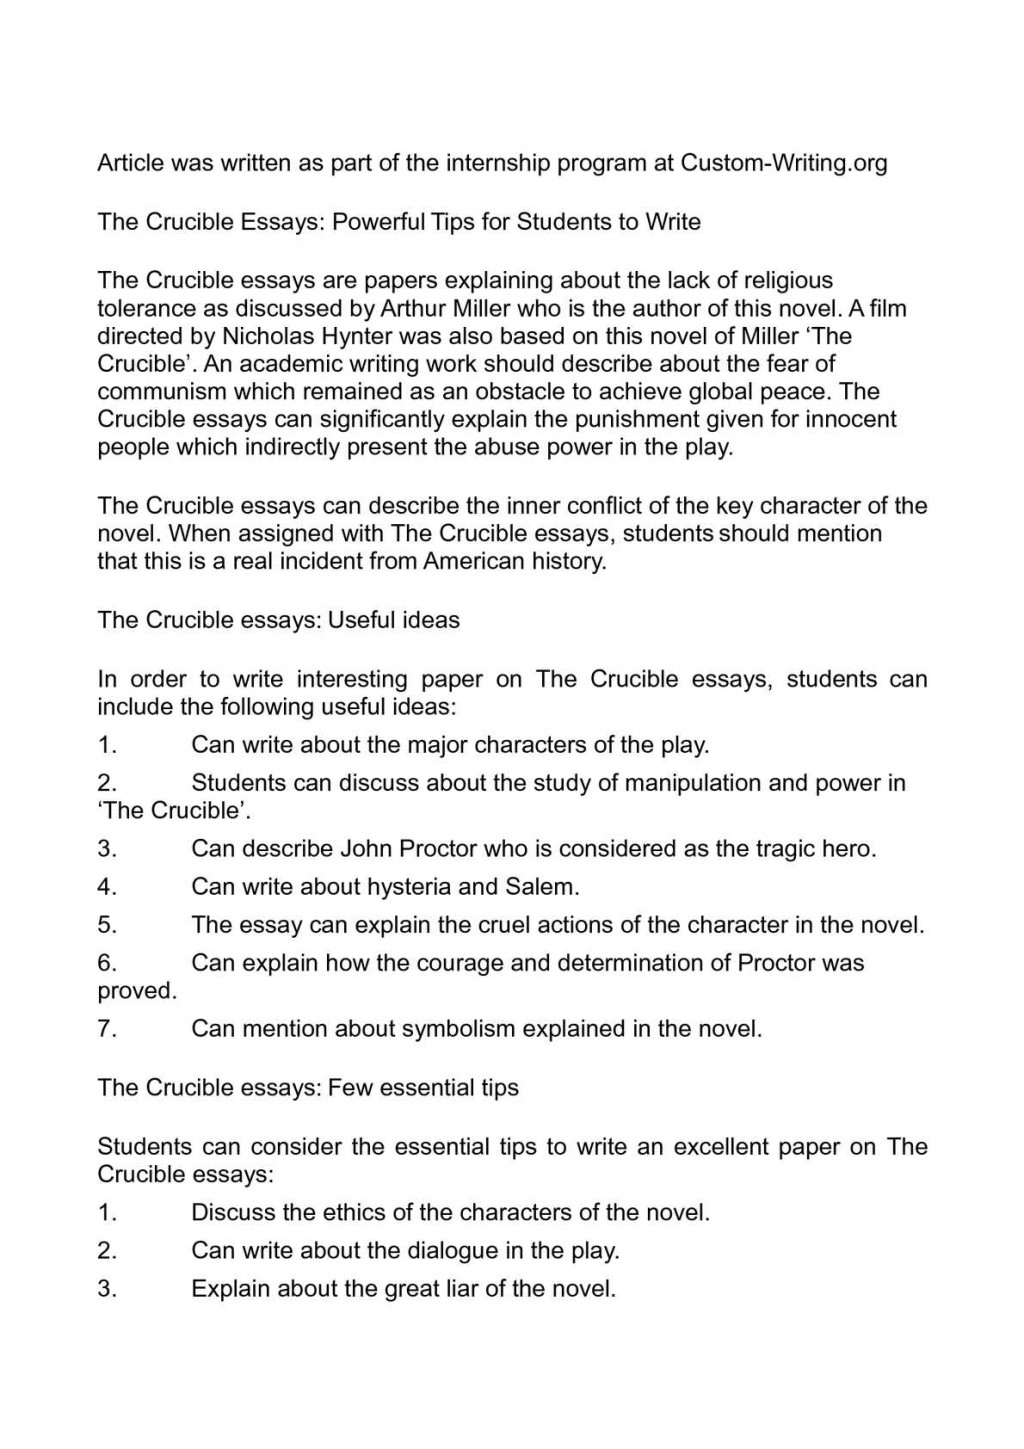 013 Essay On The Crucible Example Phenomenal And Red Scare Reputation Questions For Act 1 Large